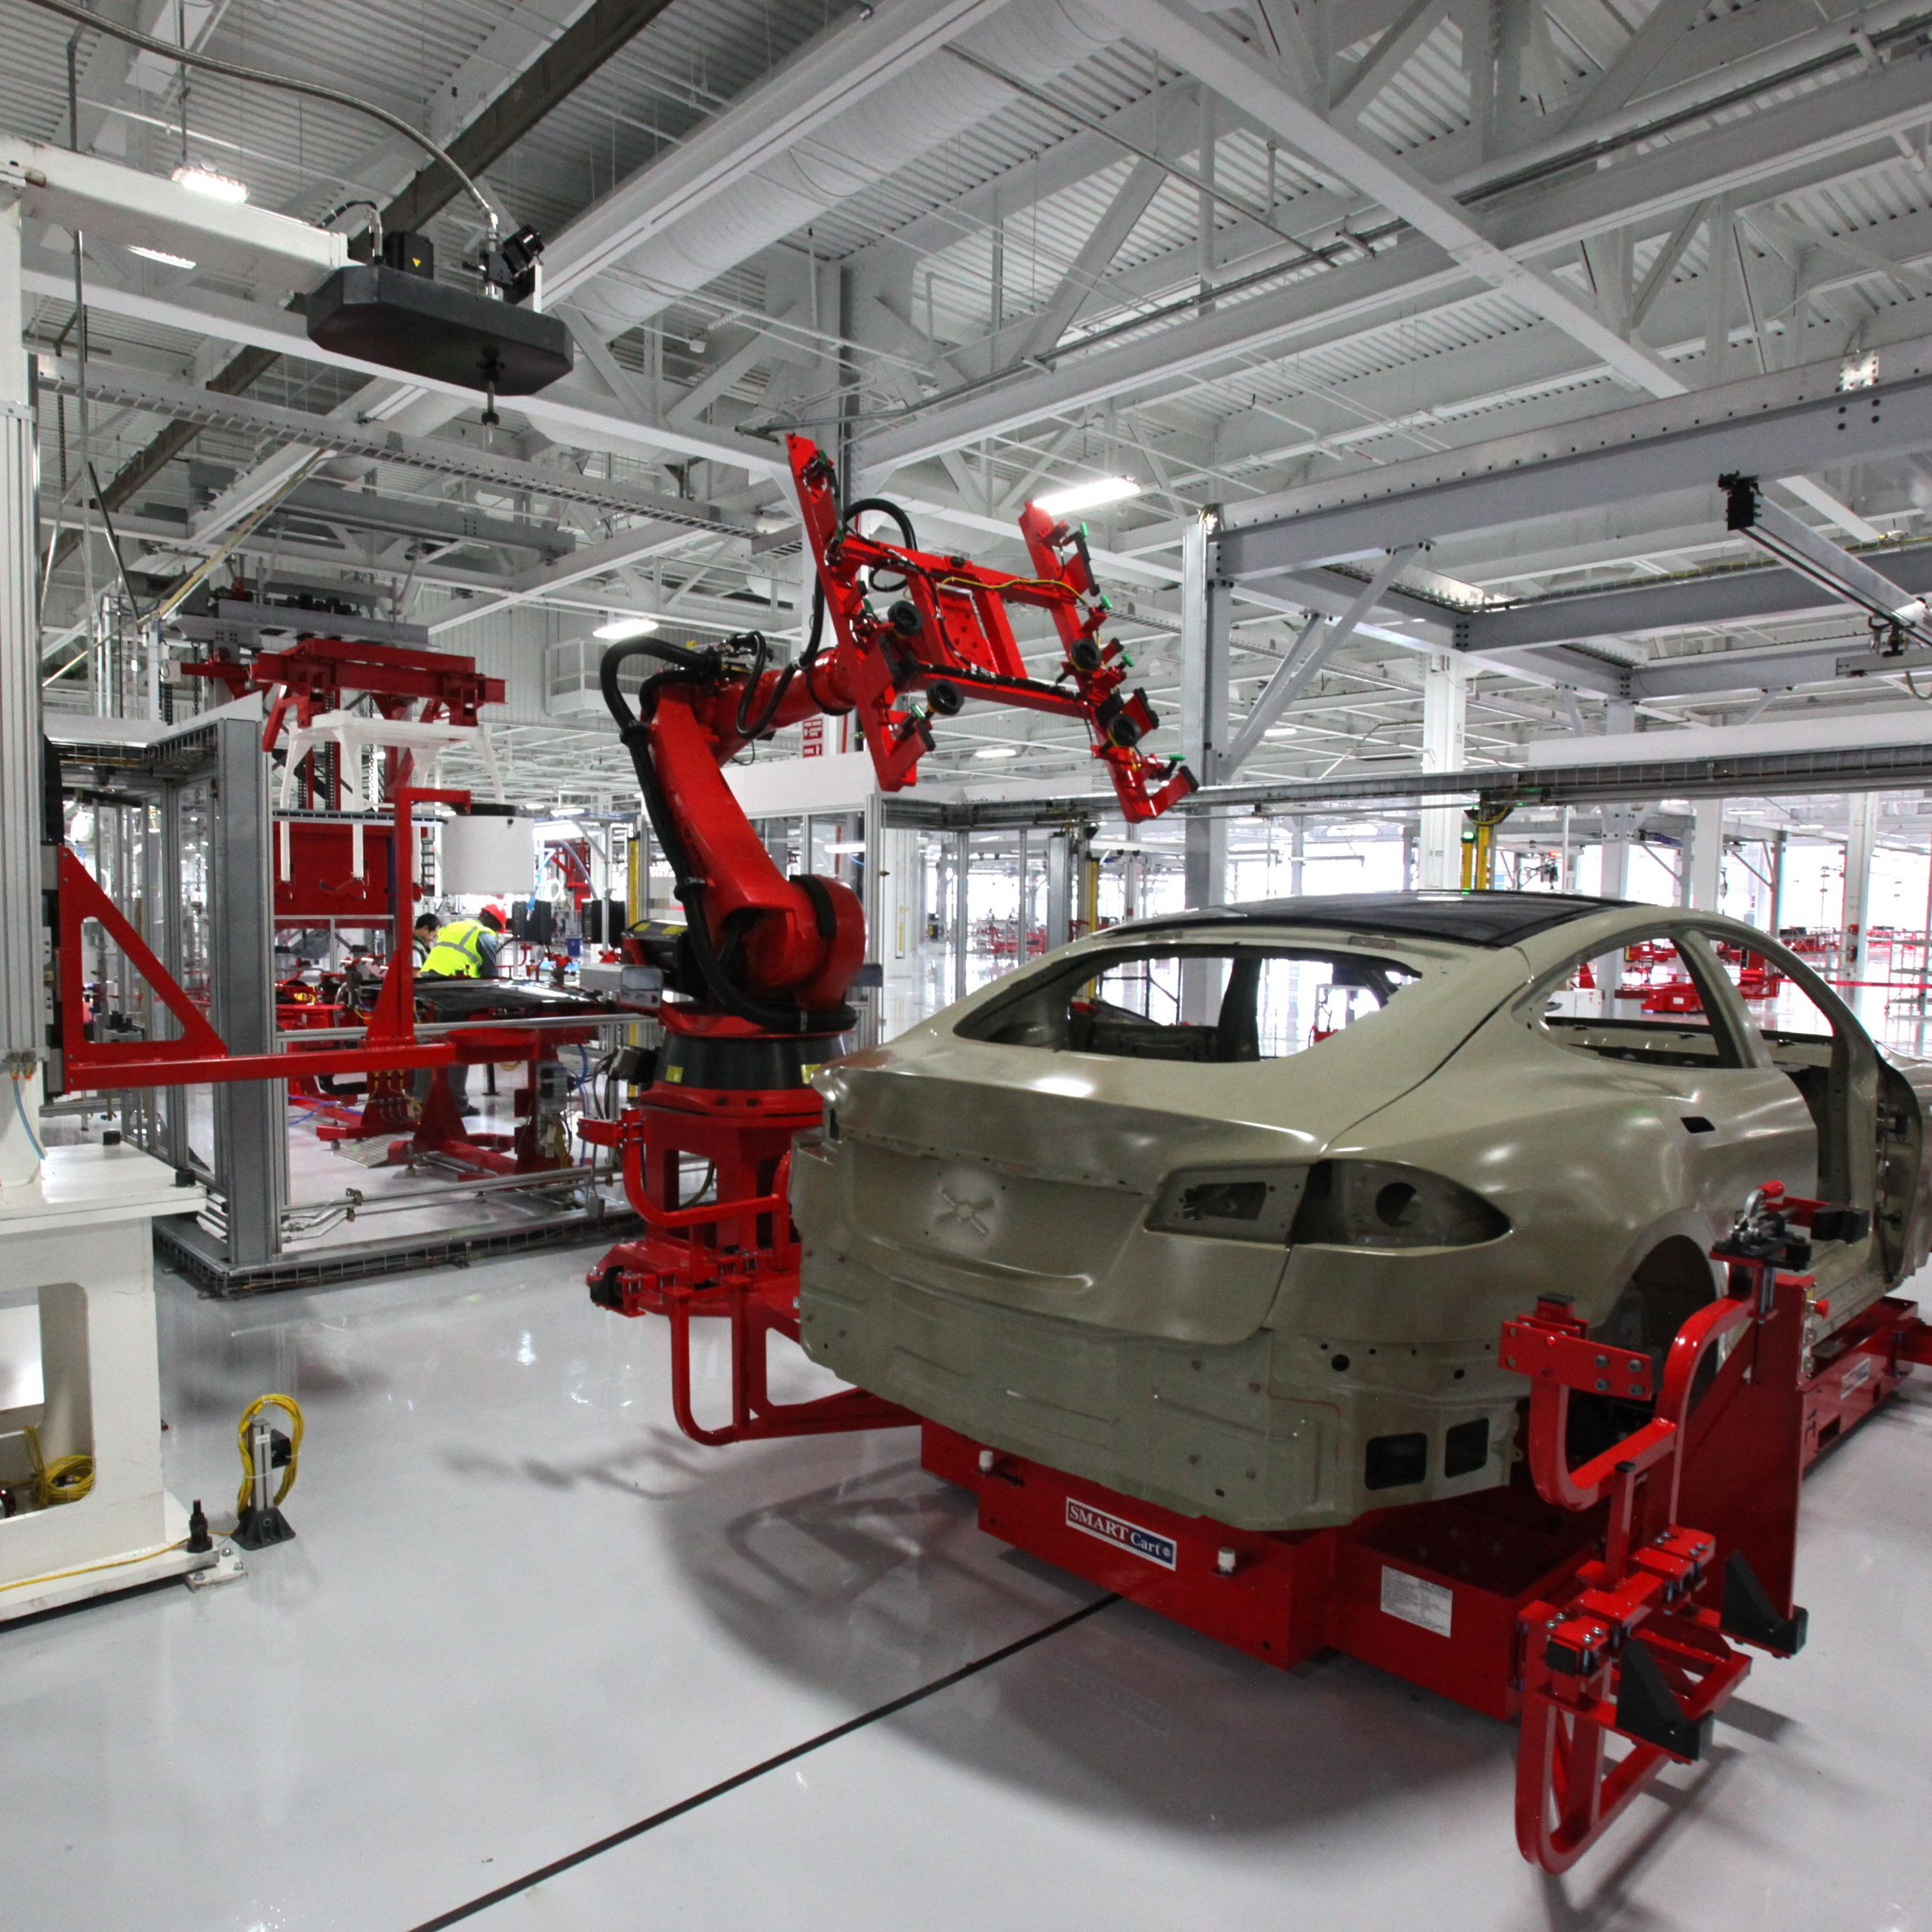 a model s under construction